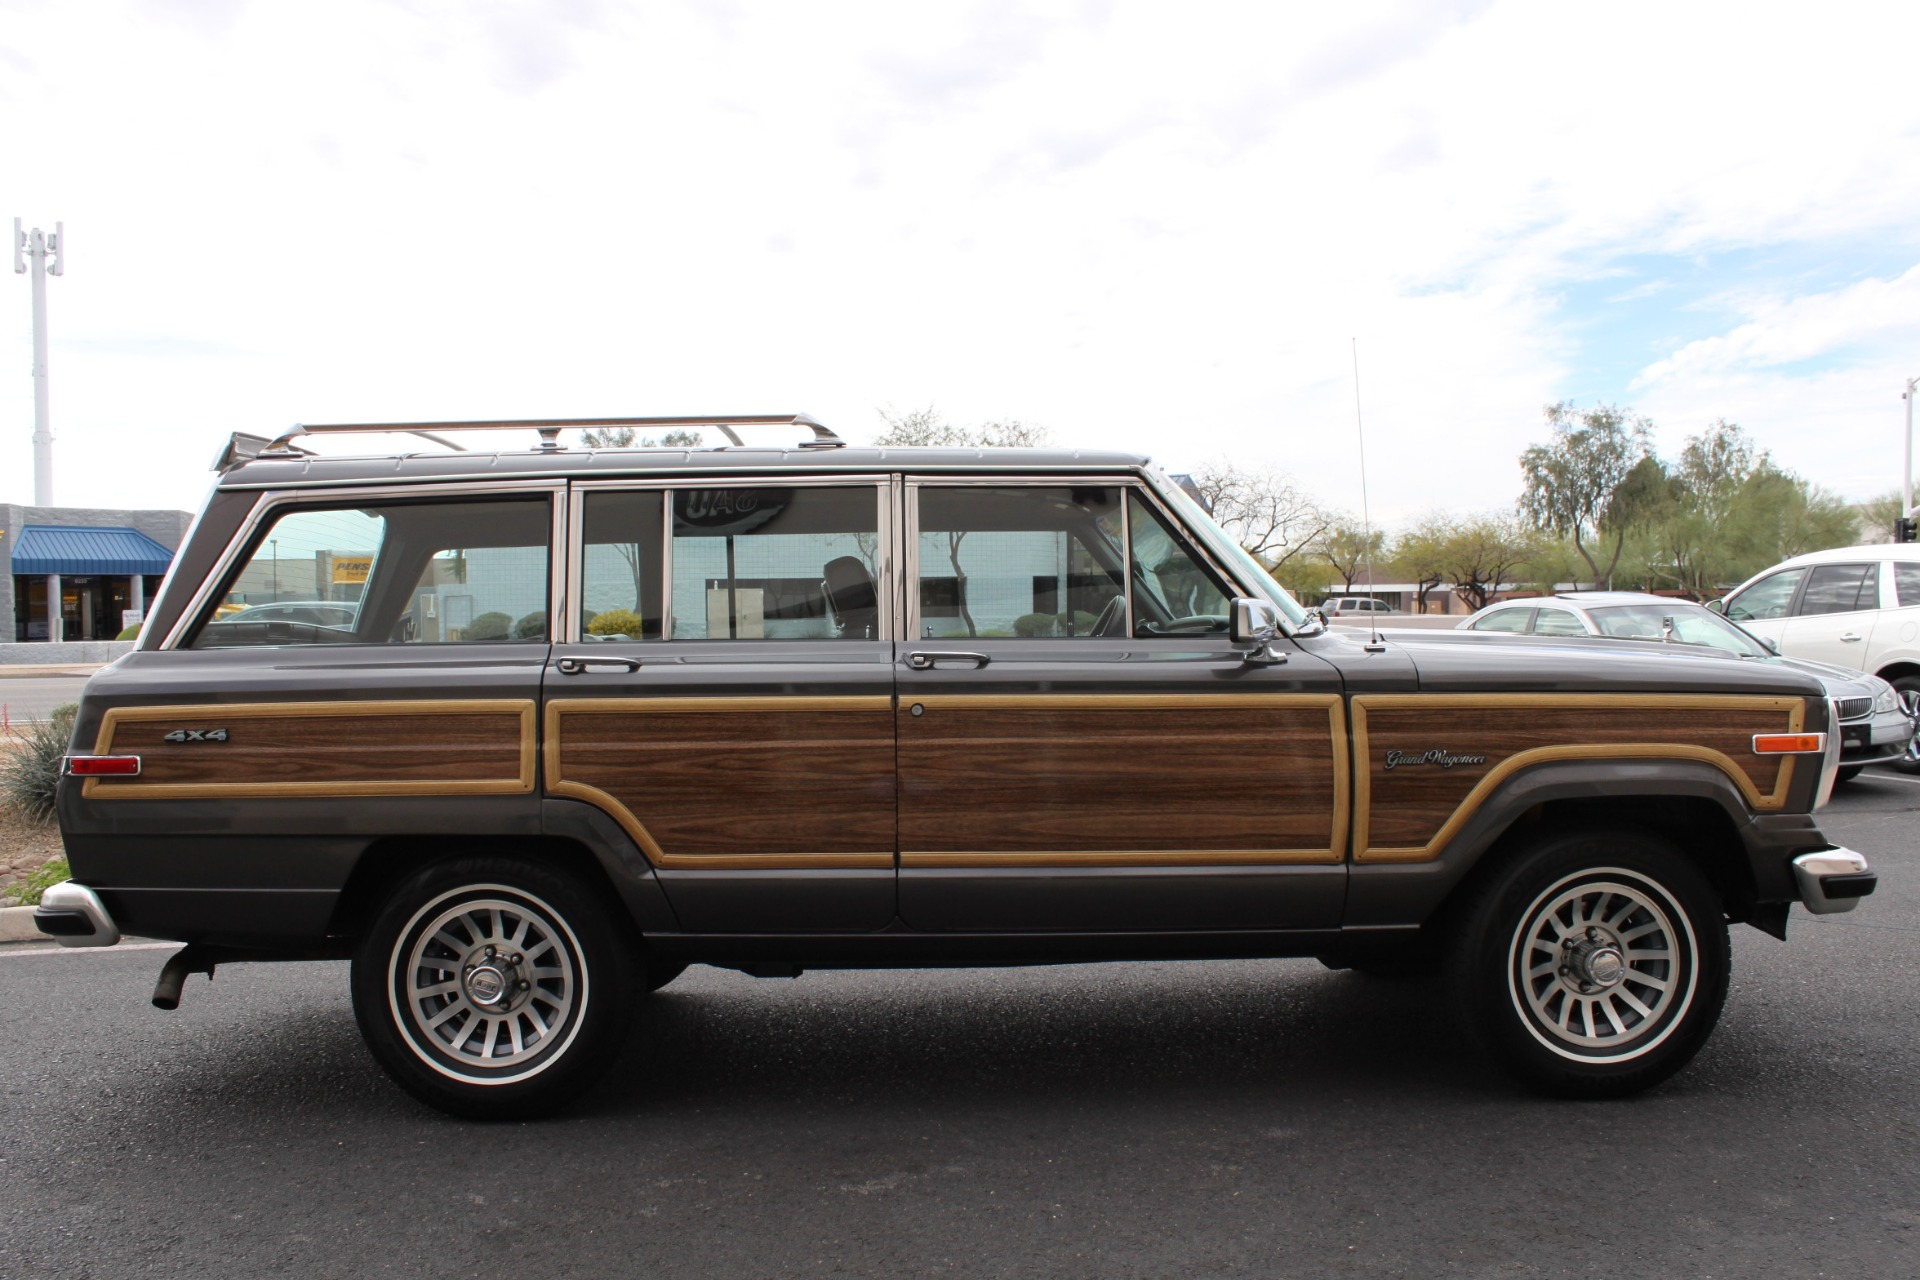 Used-1989-Jeep-Grand-Wagoneer-4X4-Chrysler